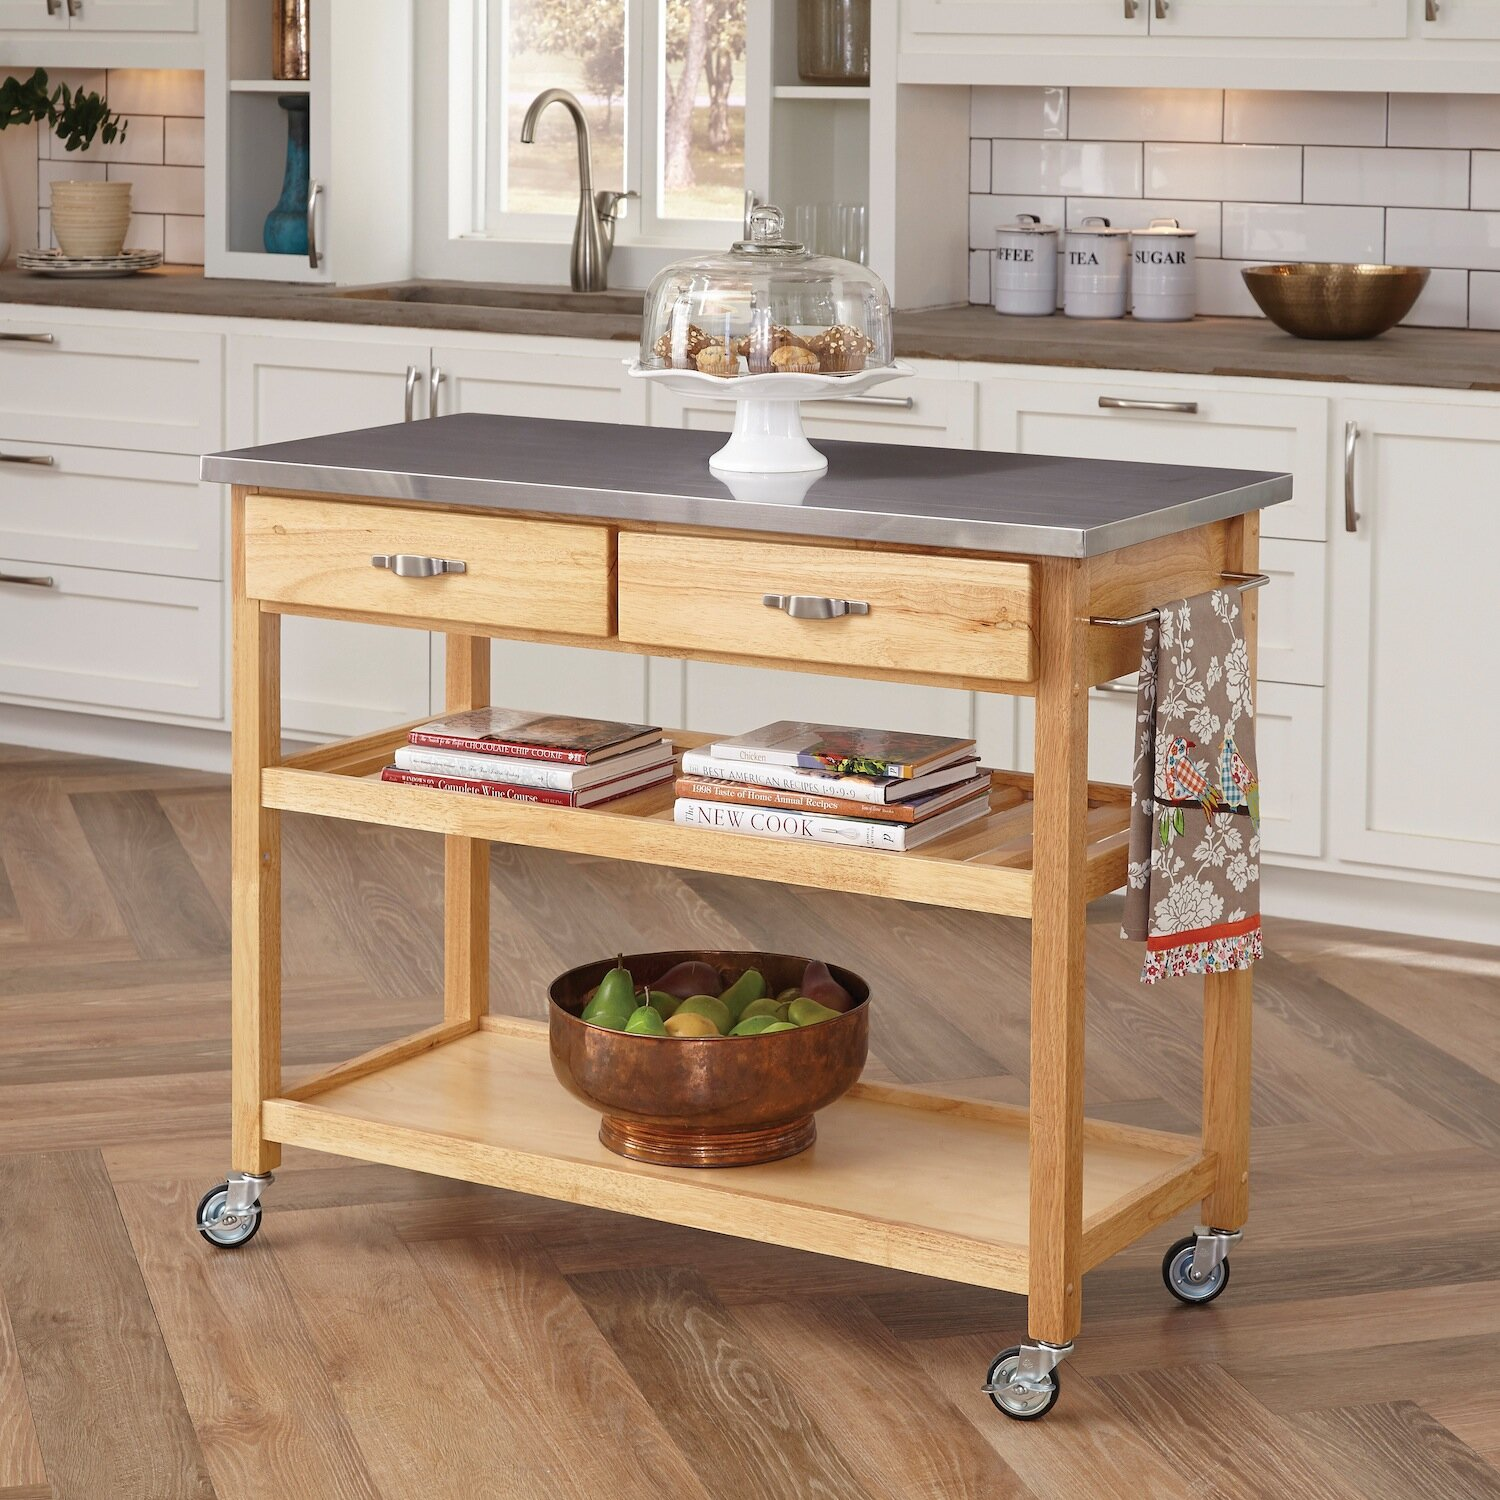 Ikea Small Kitchen Island Butcher Block Top